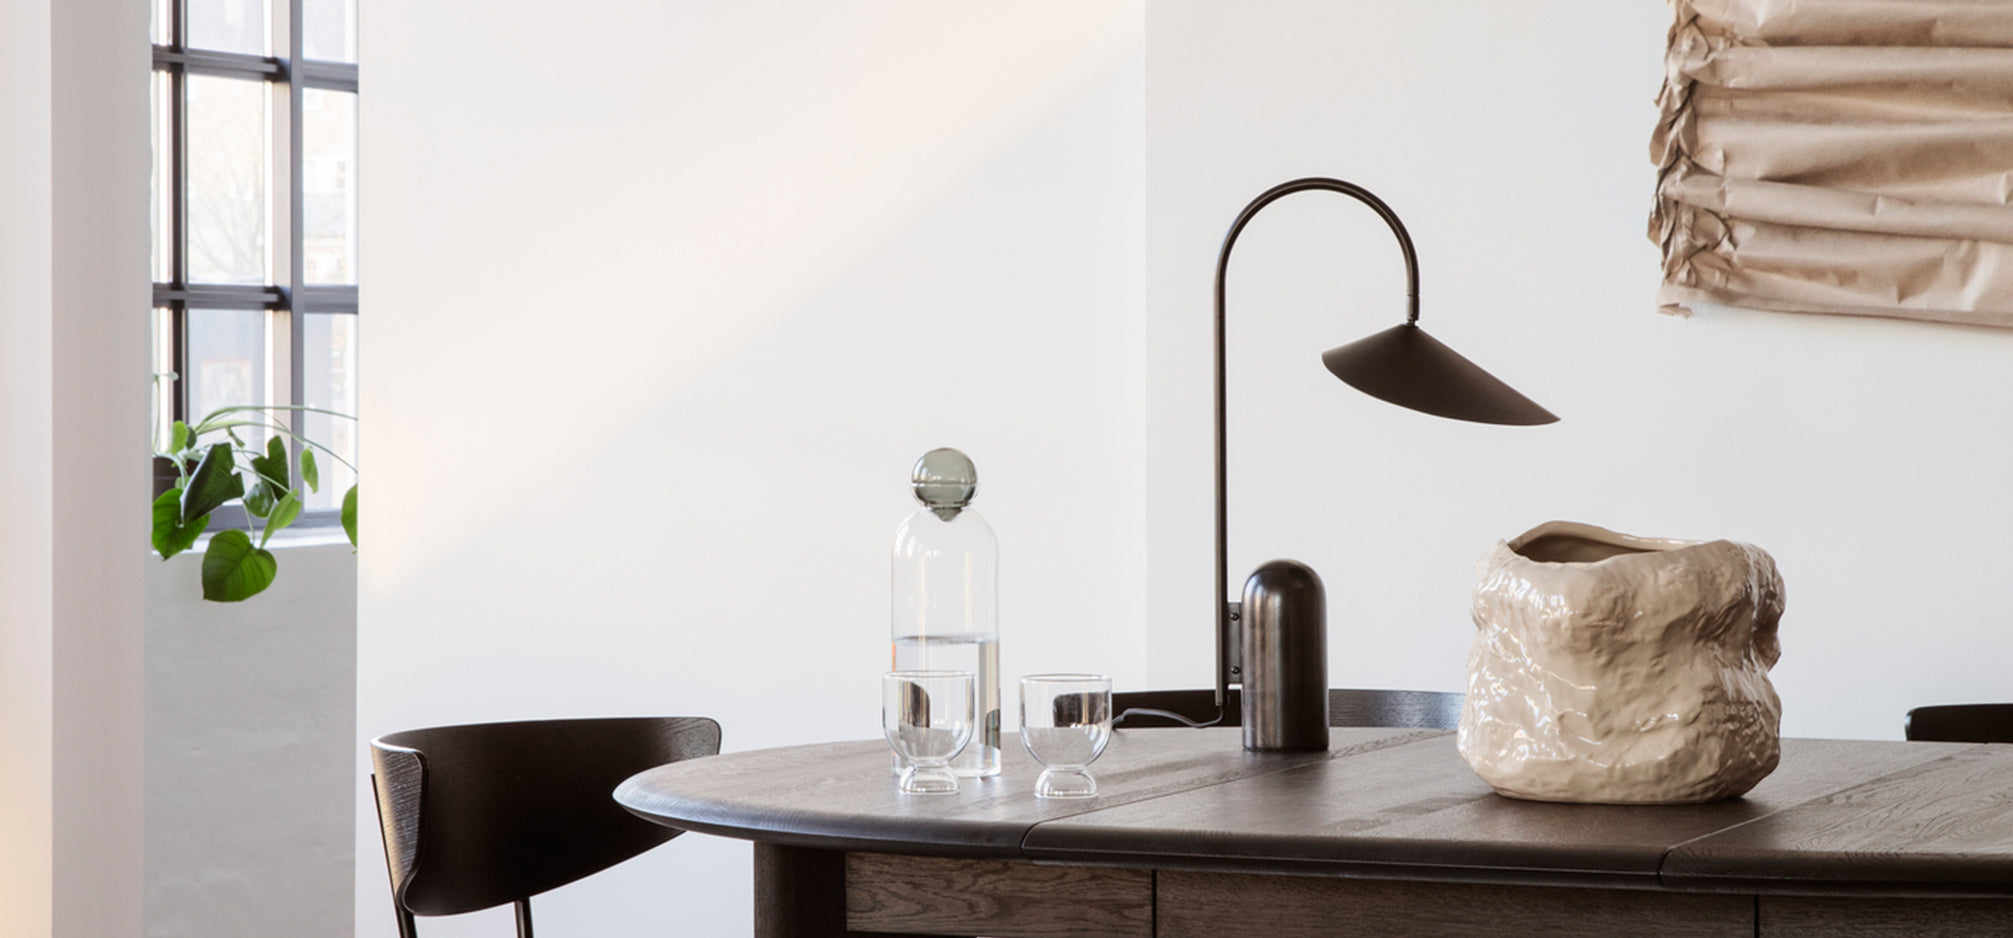 A dining table with a pitcher, lamp and vase on top.